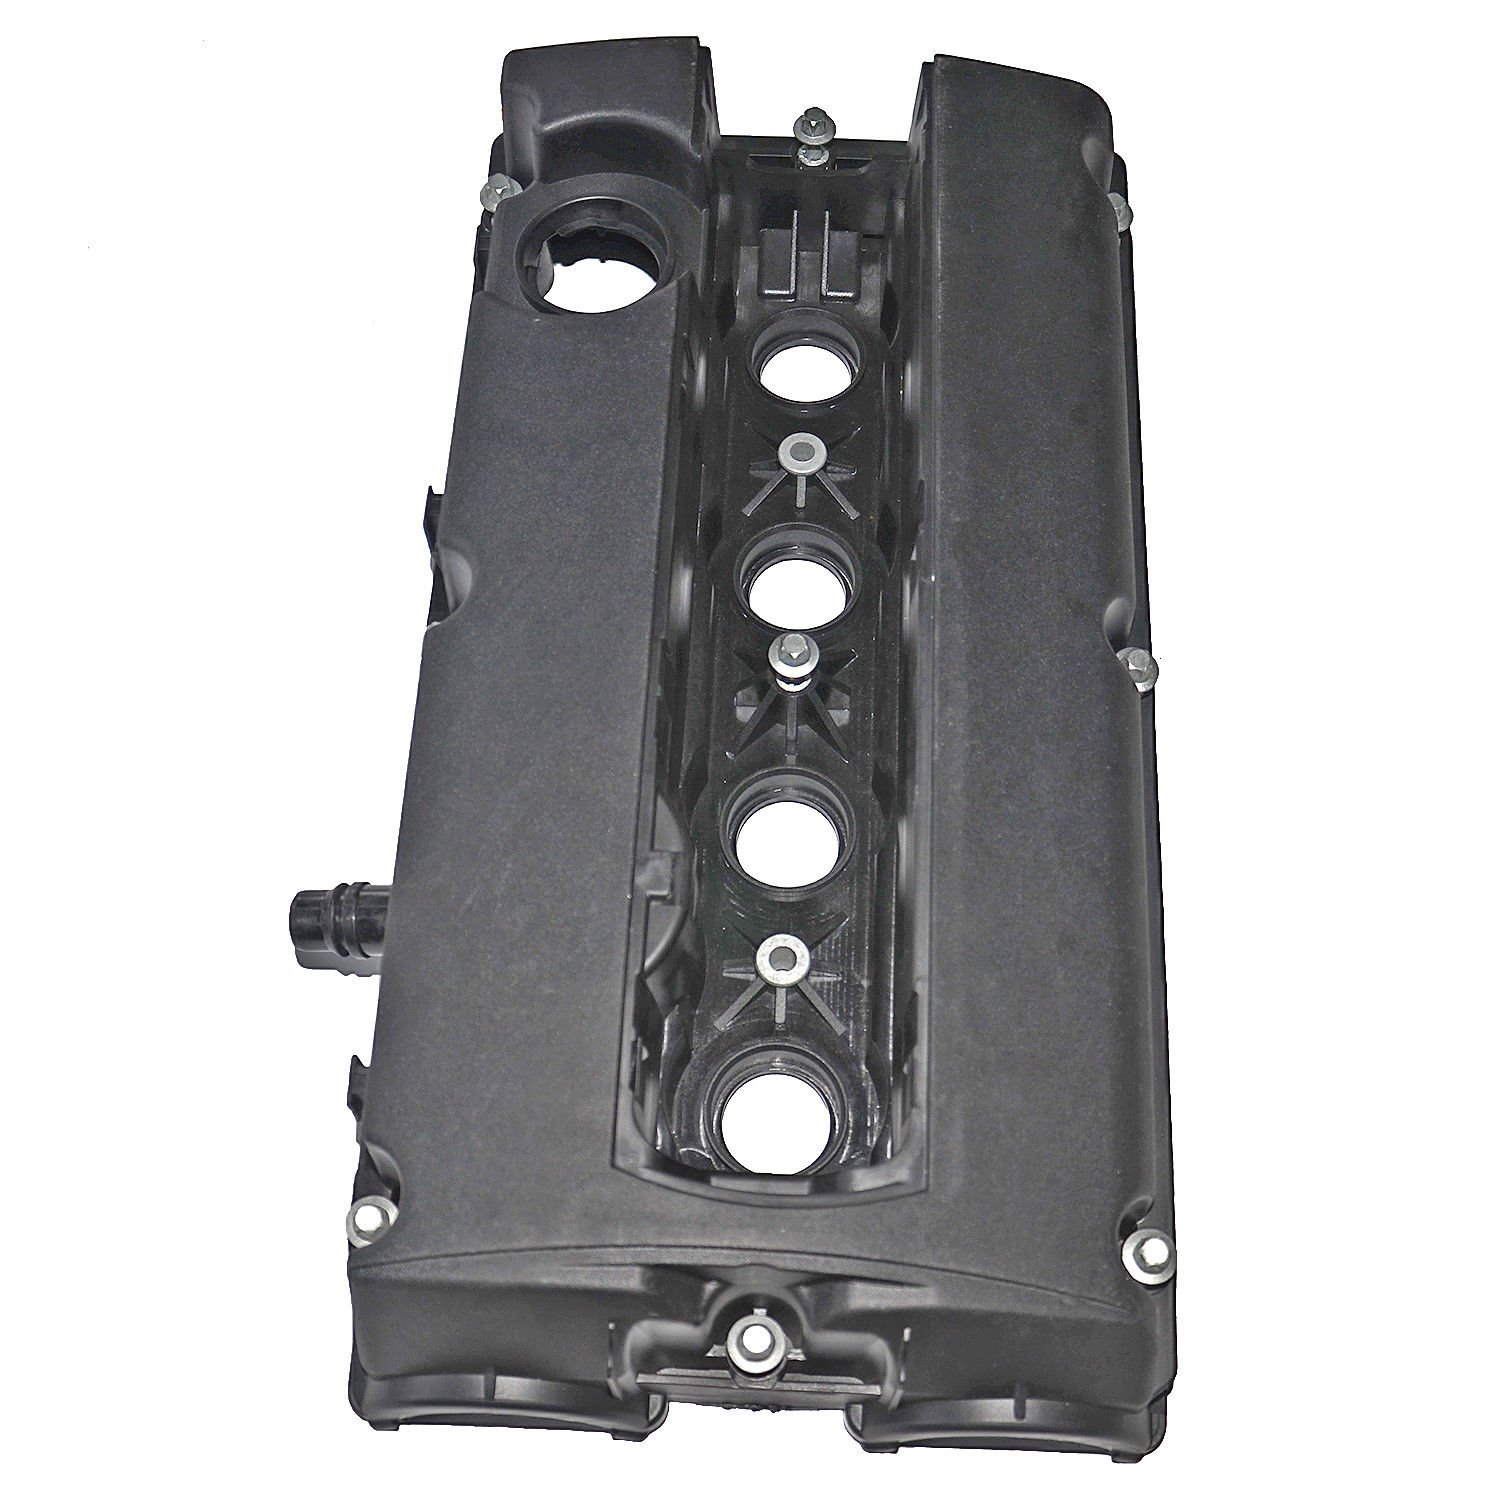 Valve Cover Cylinder Head Cover Gasket 5607159  55556284 NSGMXT